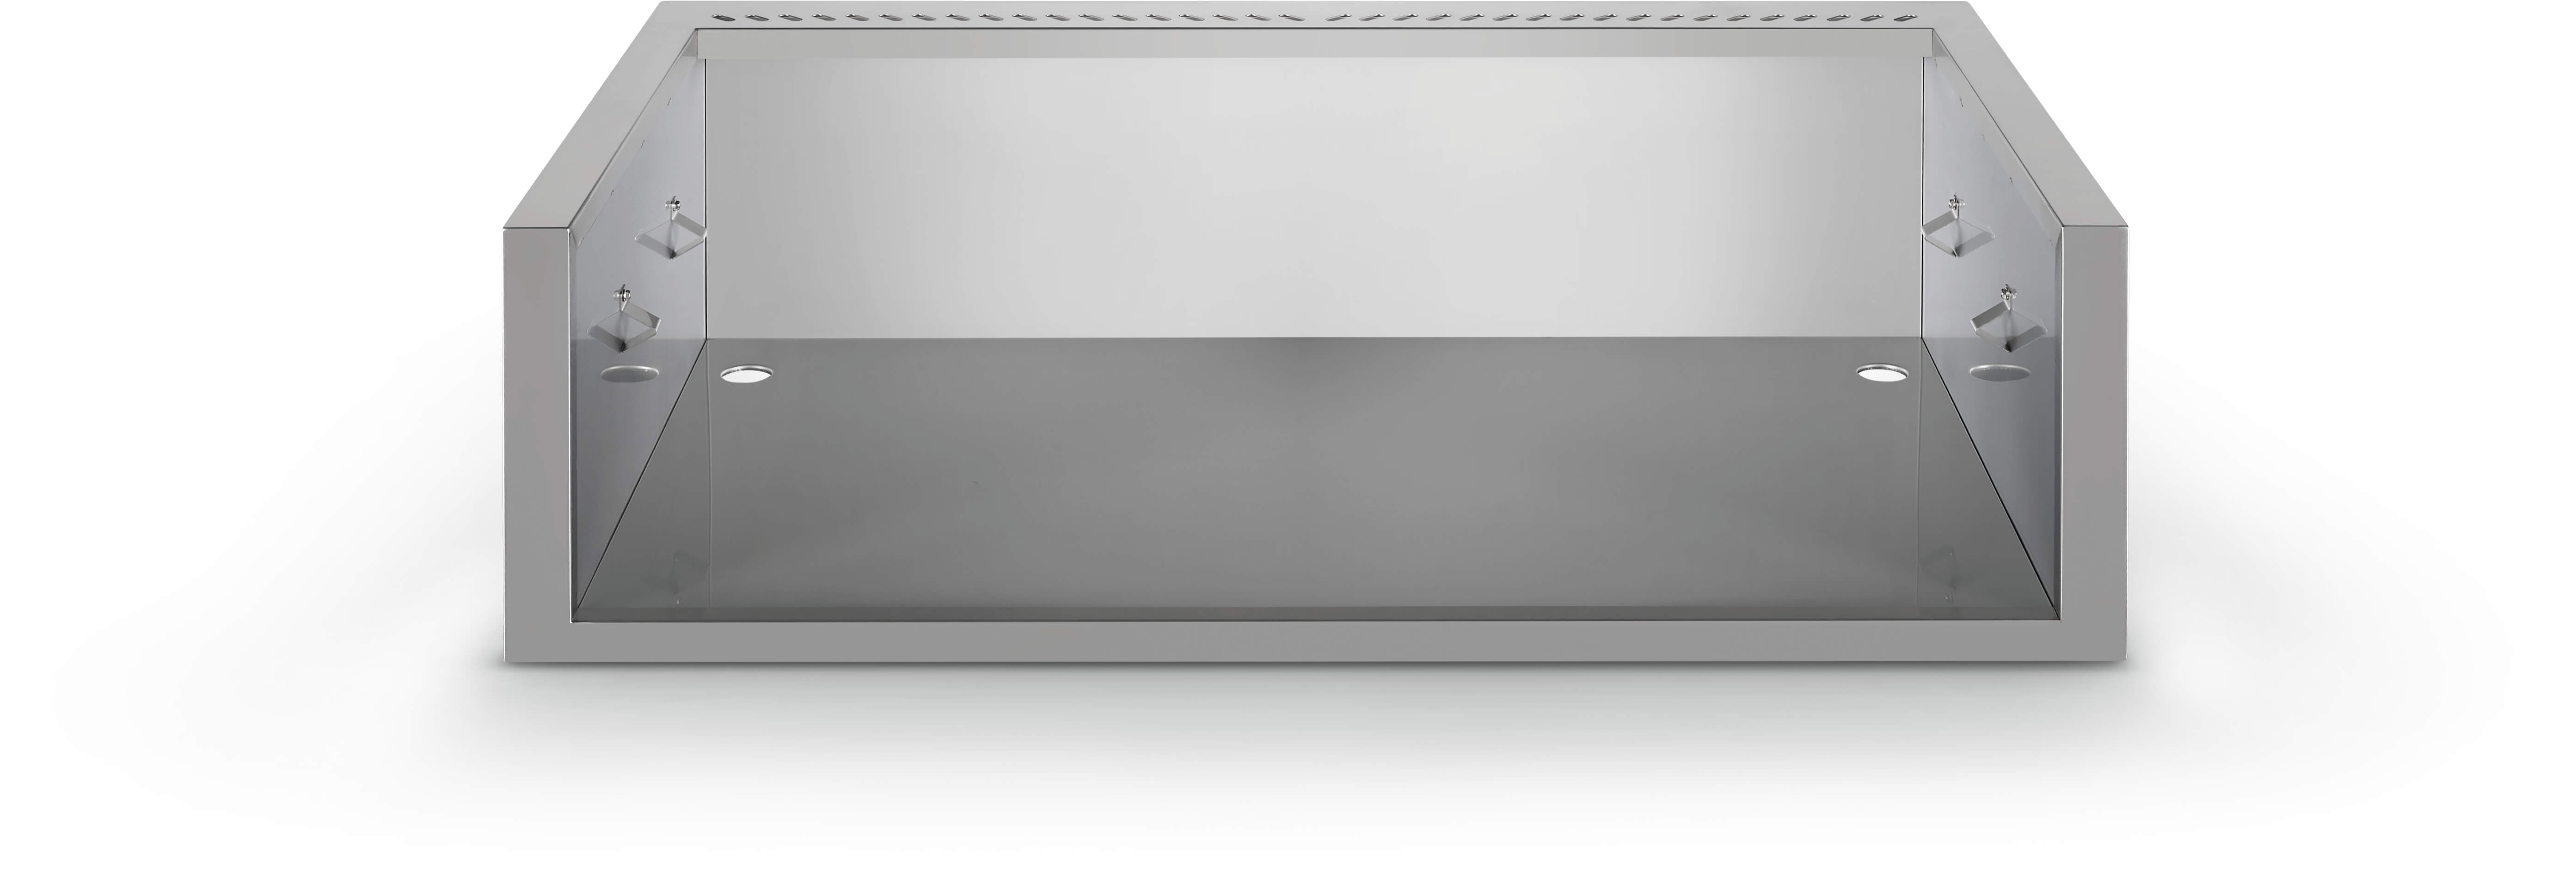 Zero Clearance Liner for Built-in 700 Series 38